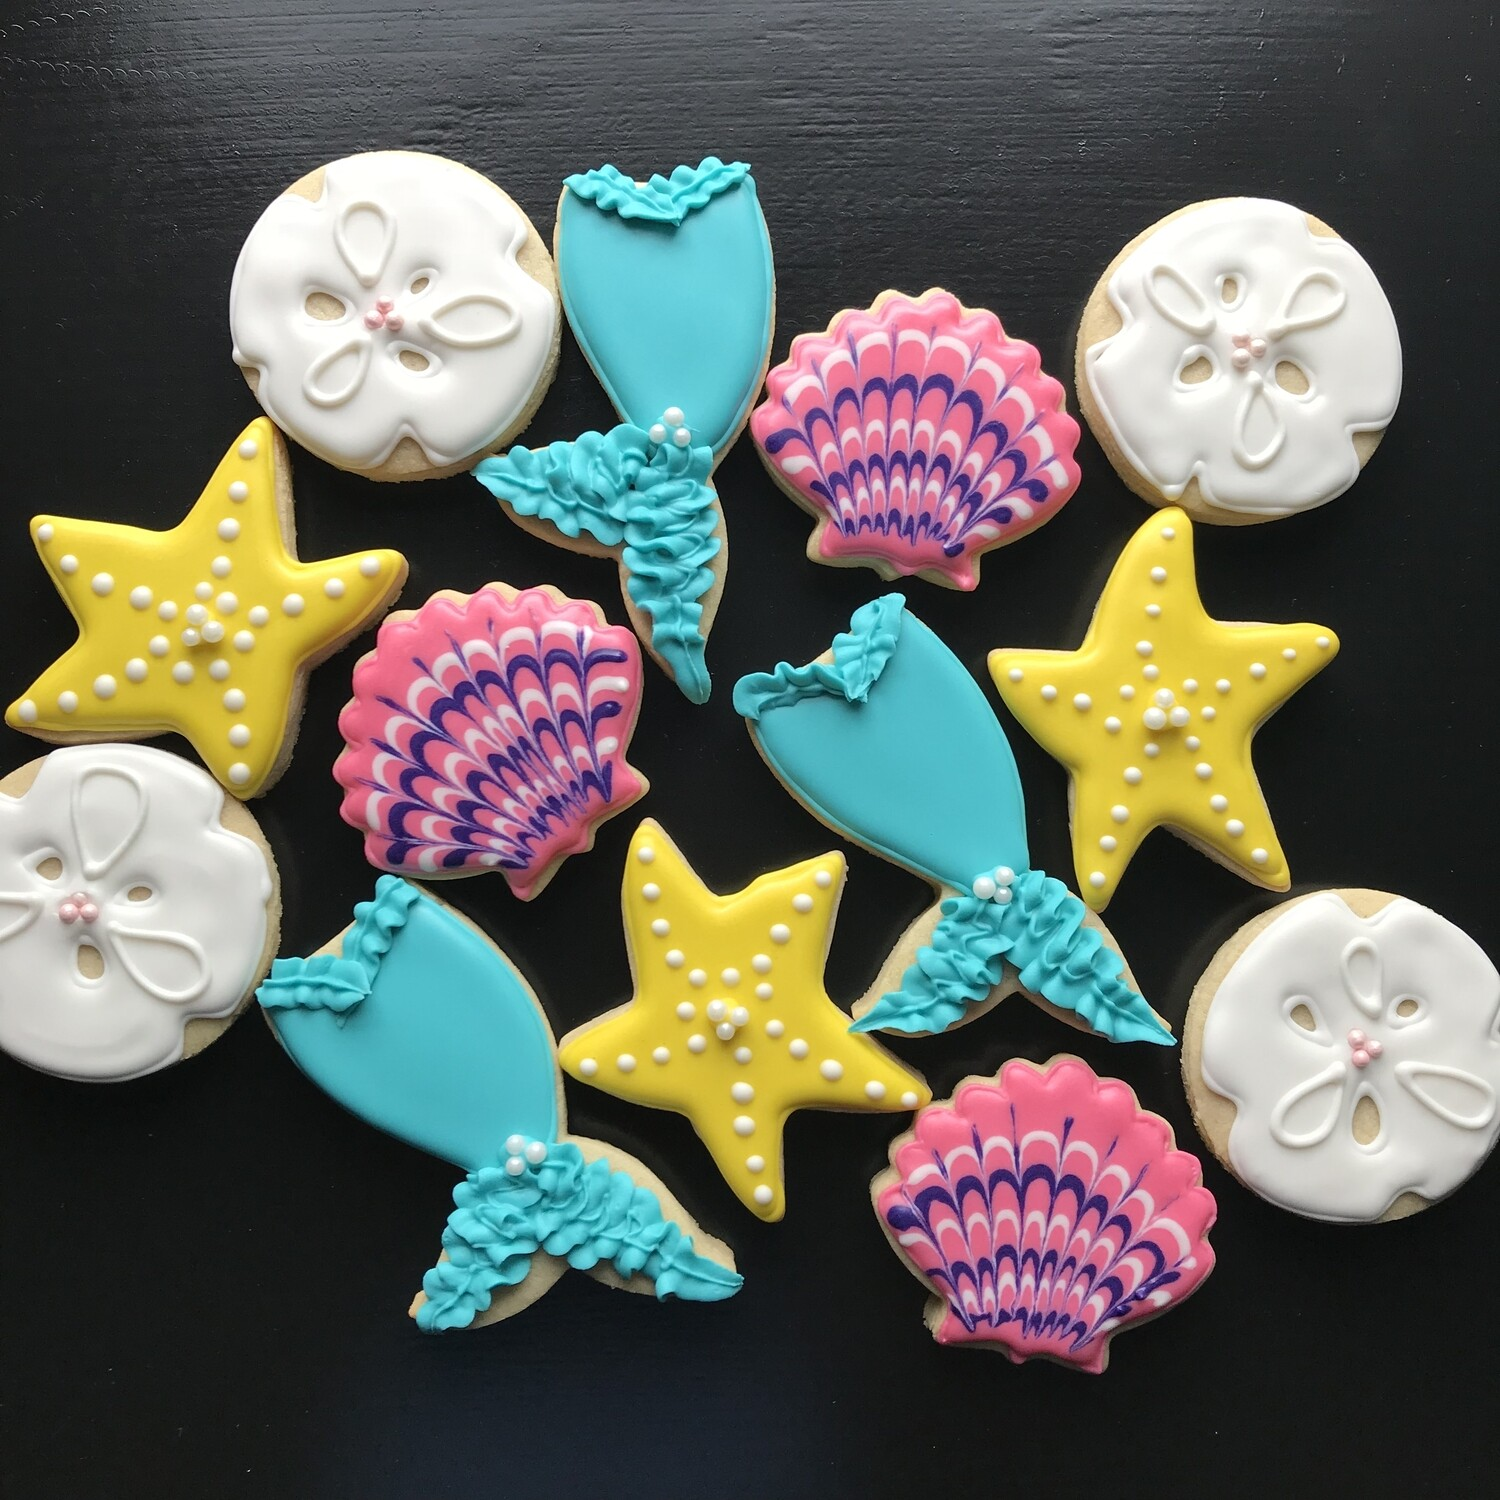 'Mermaid Decorating Workshop - THURSDAY, JULY 2nd at 6:30 p.m. (THE COOKIE DECORATING STUDIO)